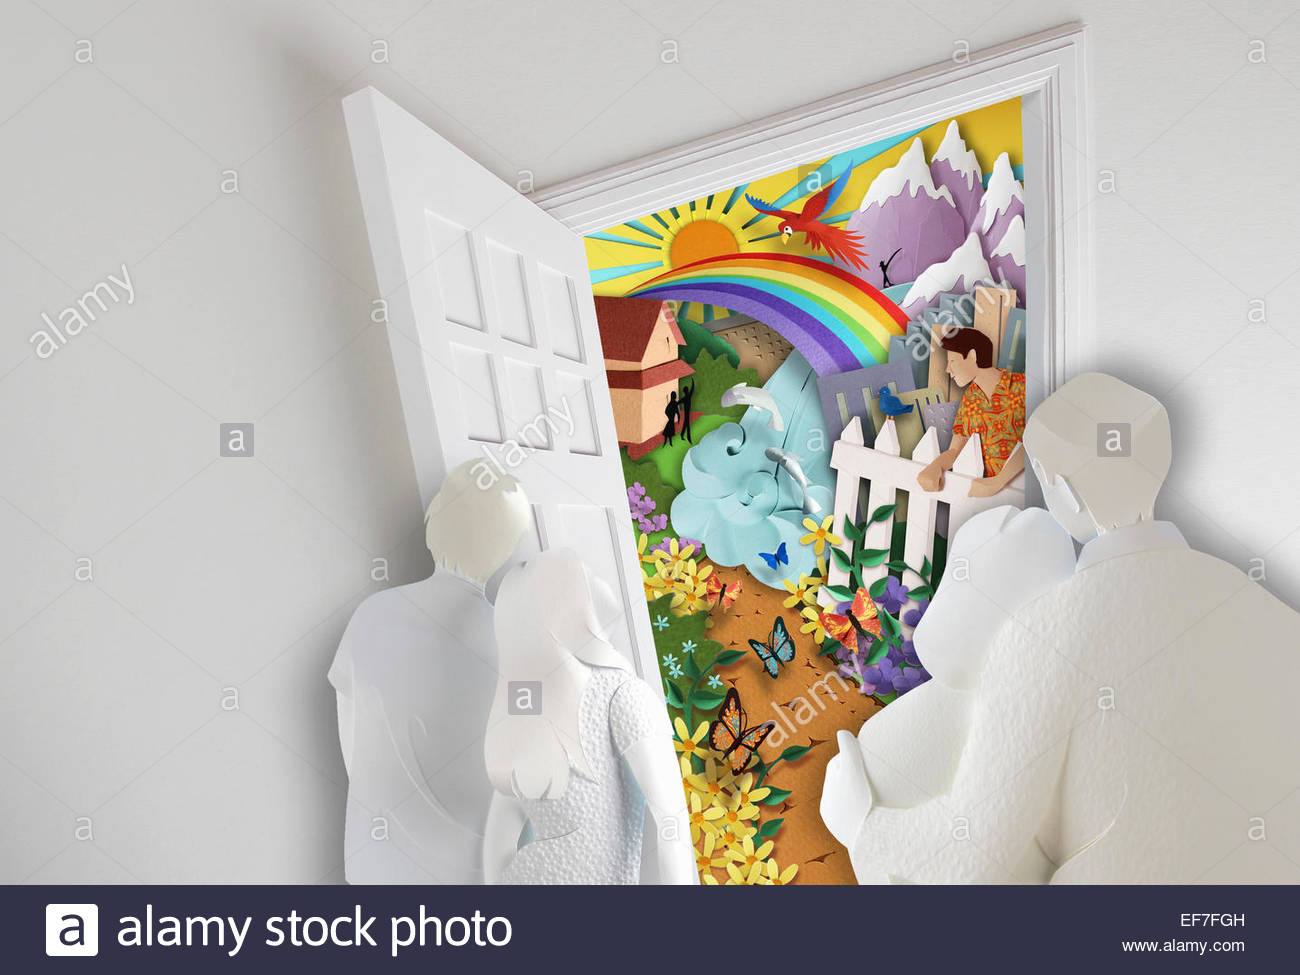 Family looking out doorway to bright colorful opportunity - Stock Image